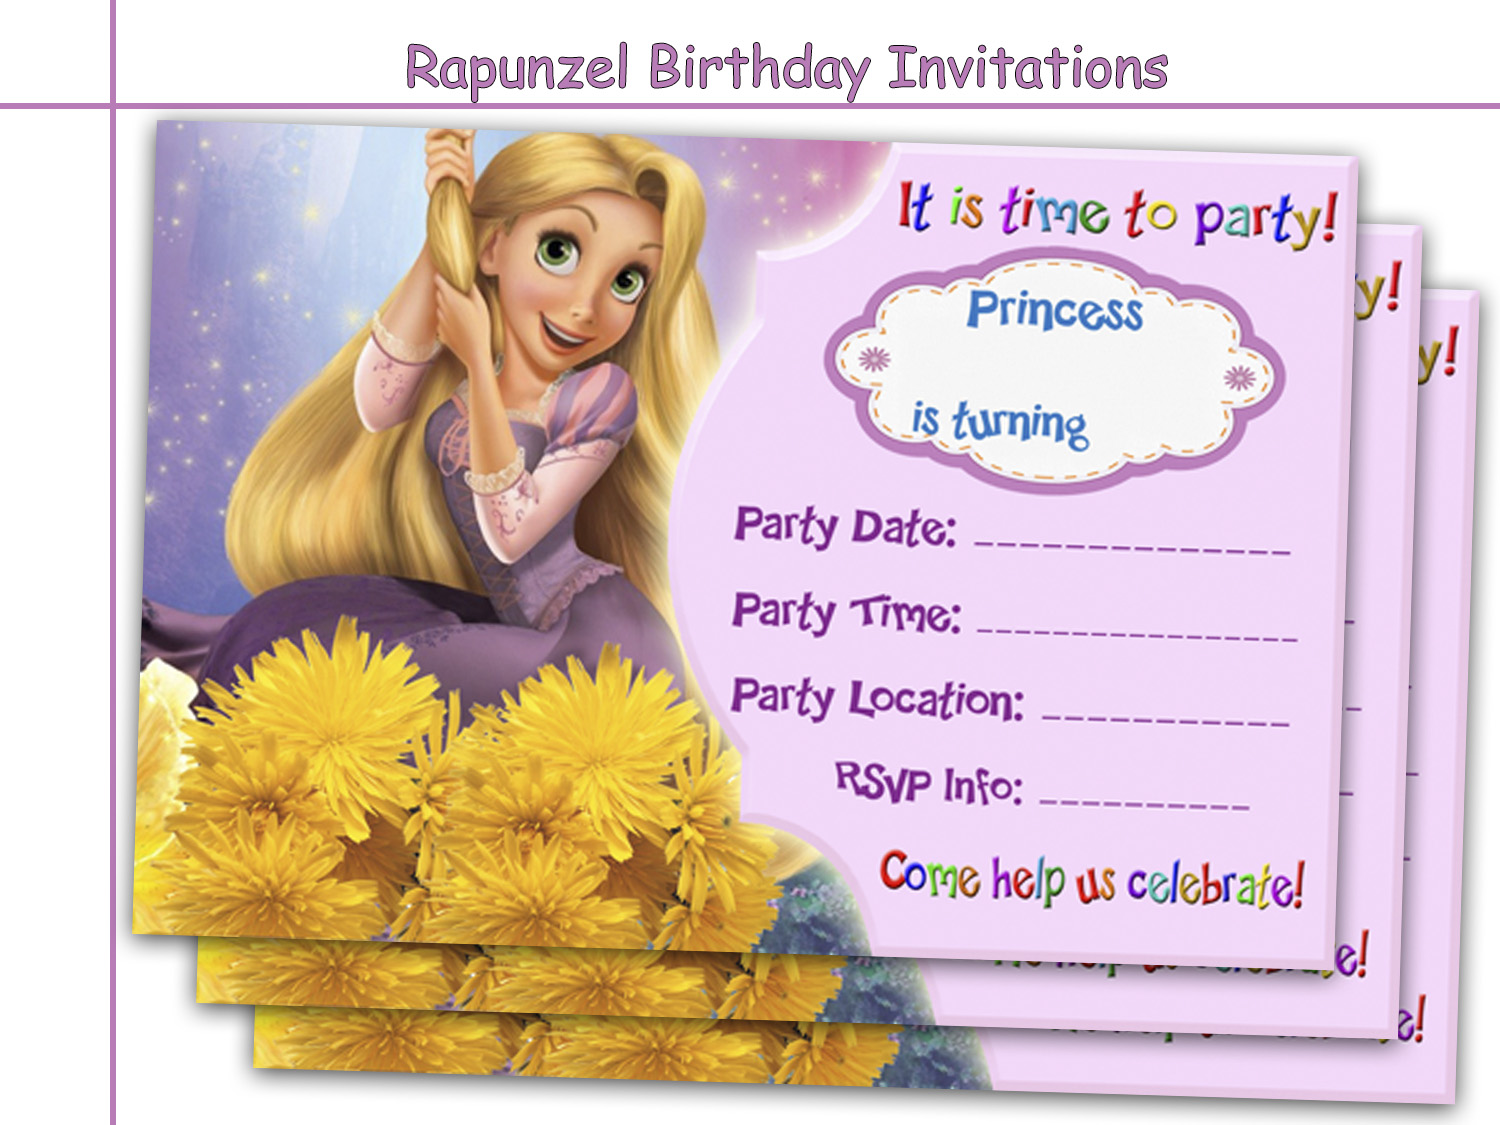 Amazing rapunzel birthday invitations by holidaypartystar on zibbet filmwisefo